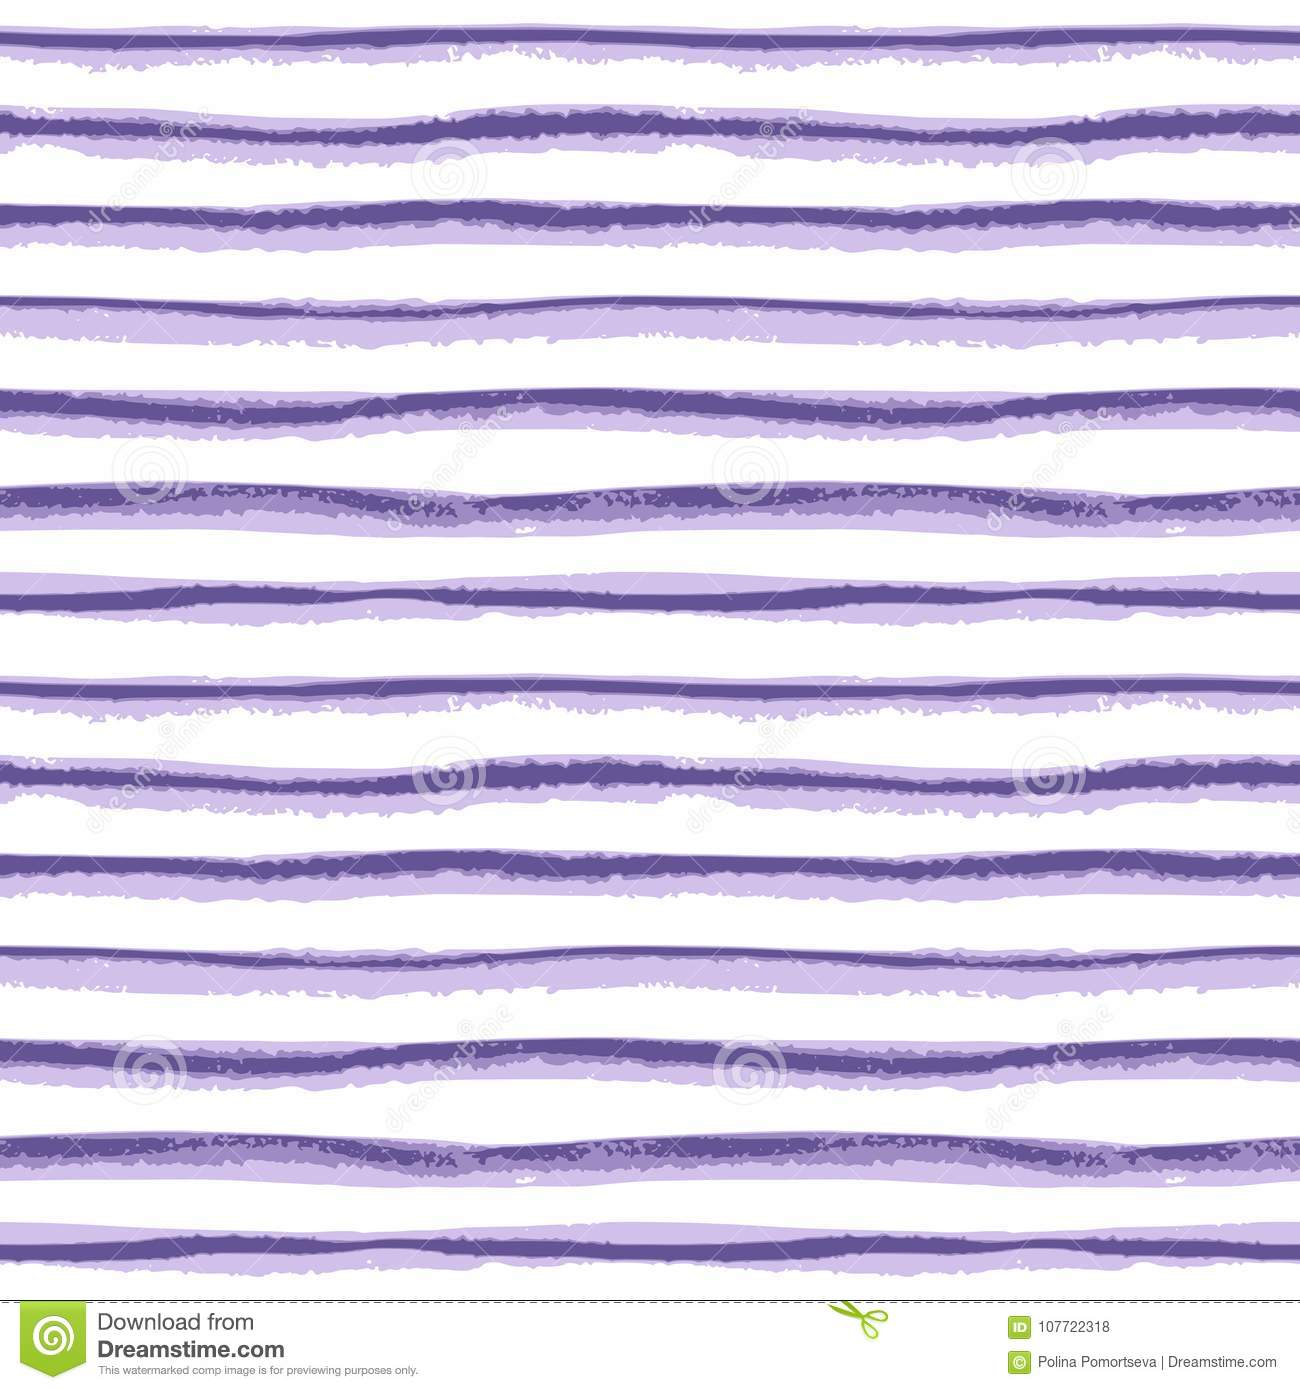 Seamless ink hand drawn stripe texture on white background.